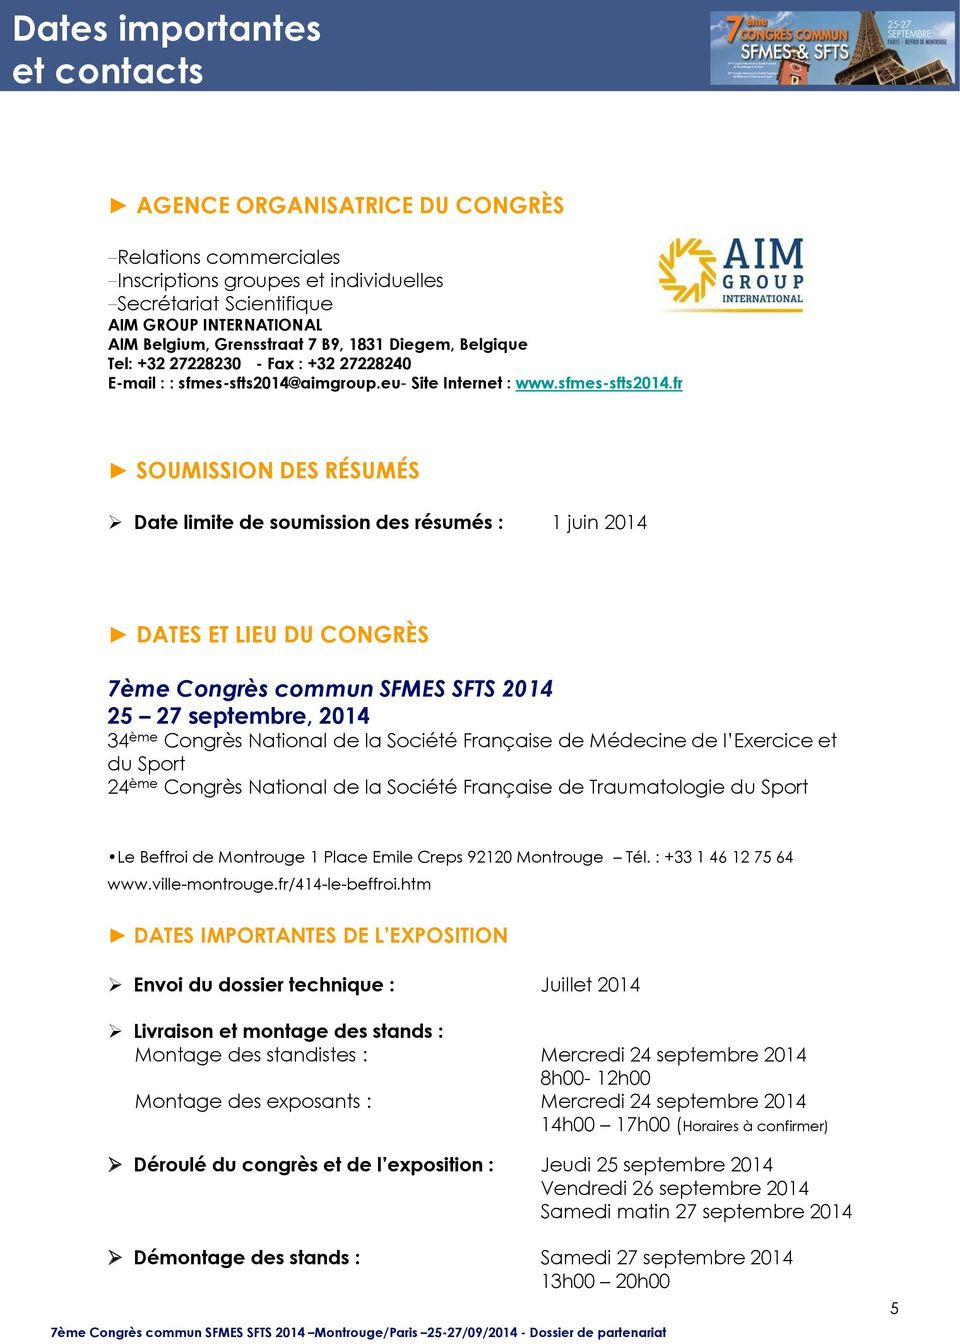 aimgroup.eu- Site Internet : www.sfmes-sfts2014.